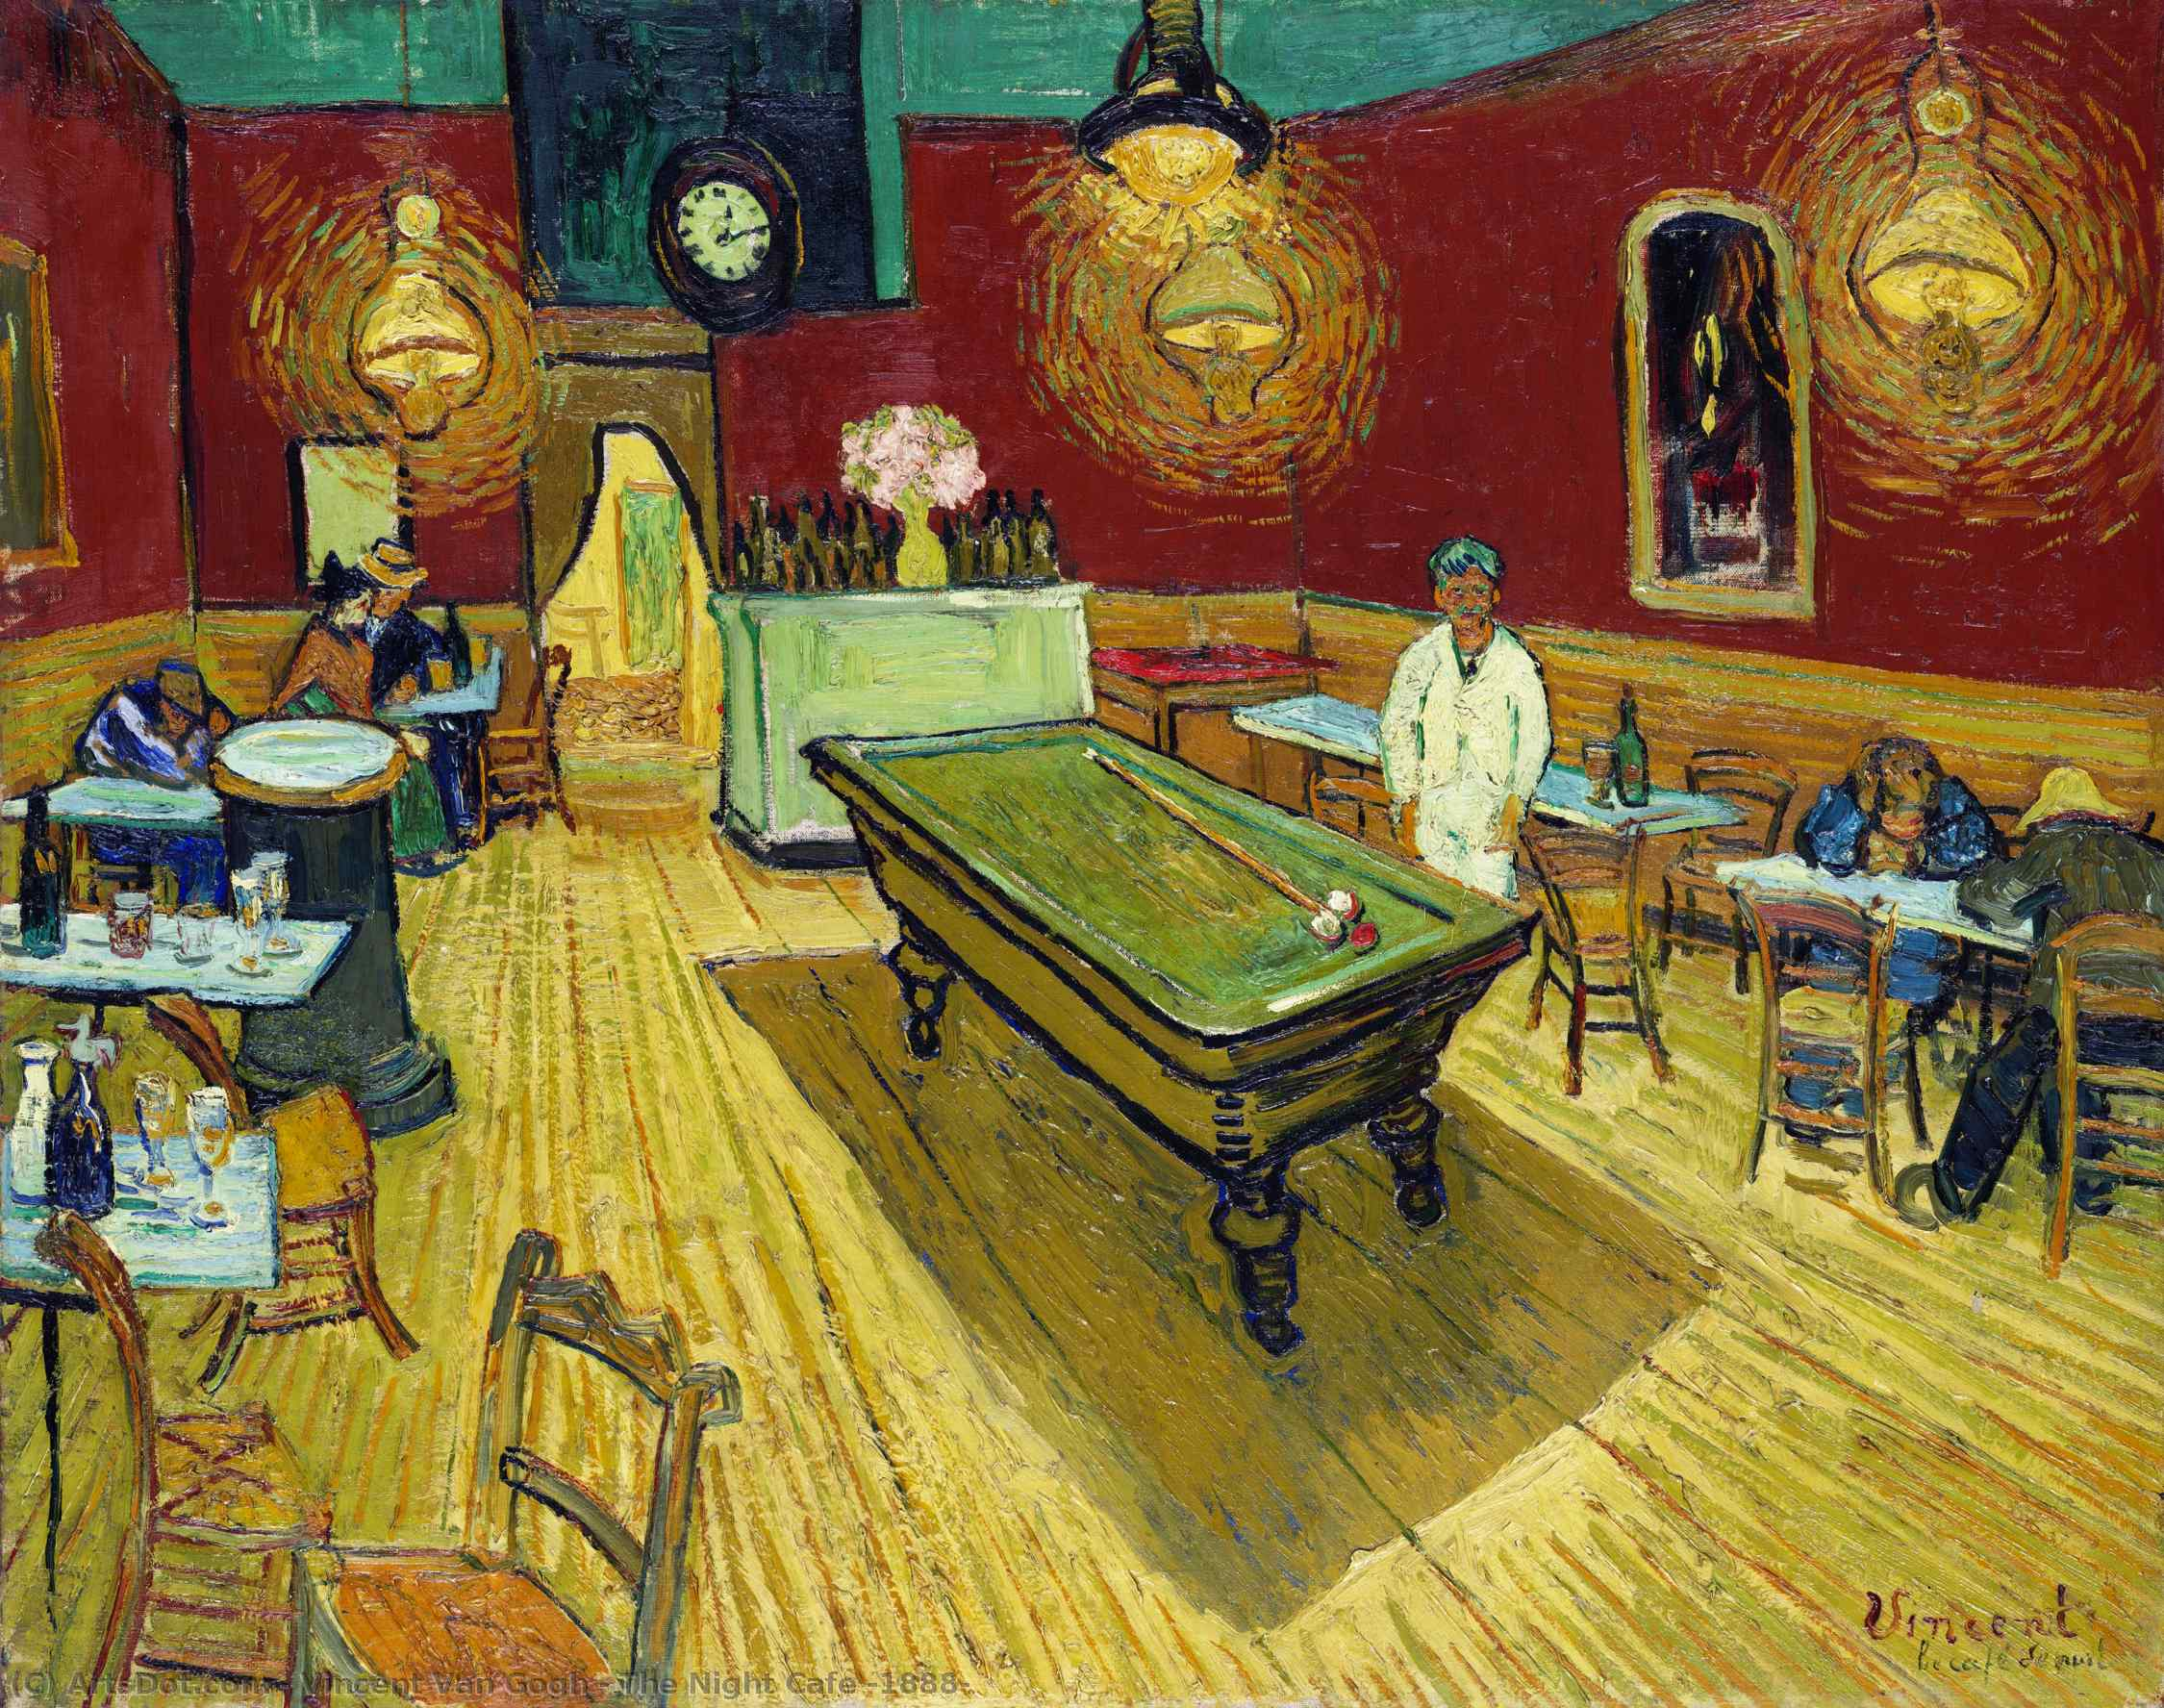 Wikioo.org - สารานุกรมวิจิตรศิลป์ - จิตรกรรม Vincent Van Gogh - The Night Cafe